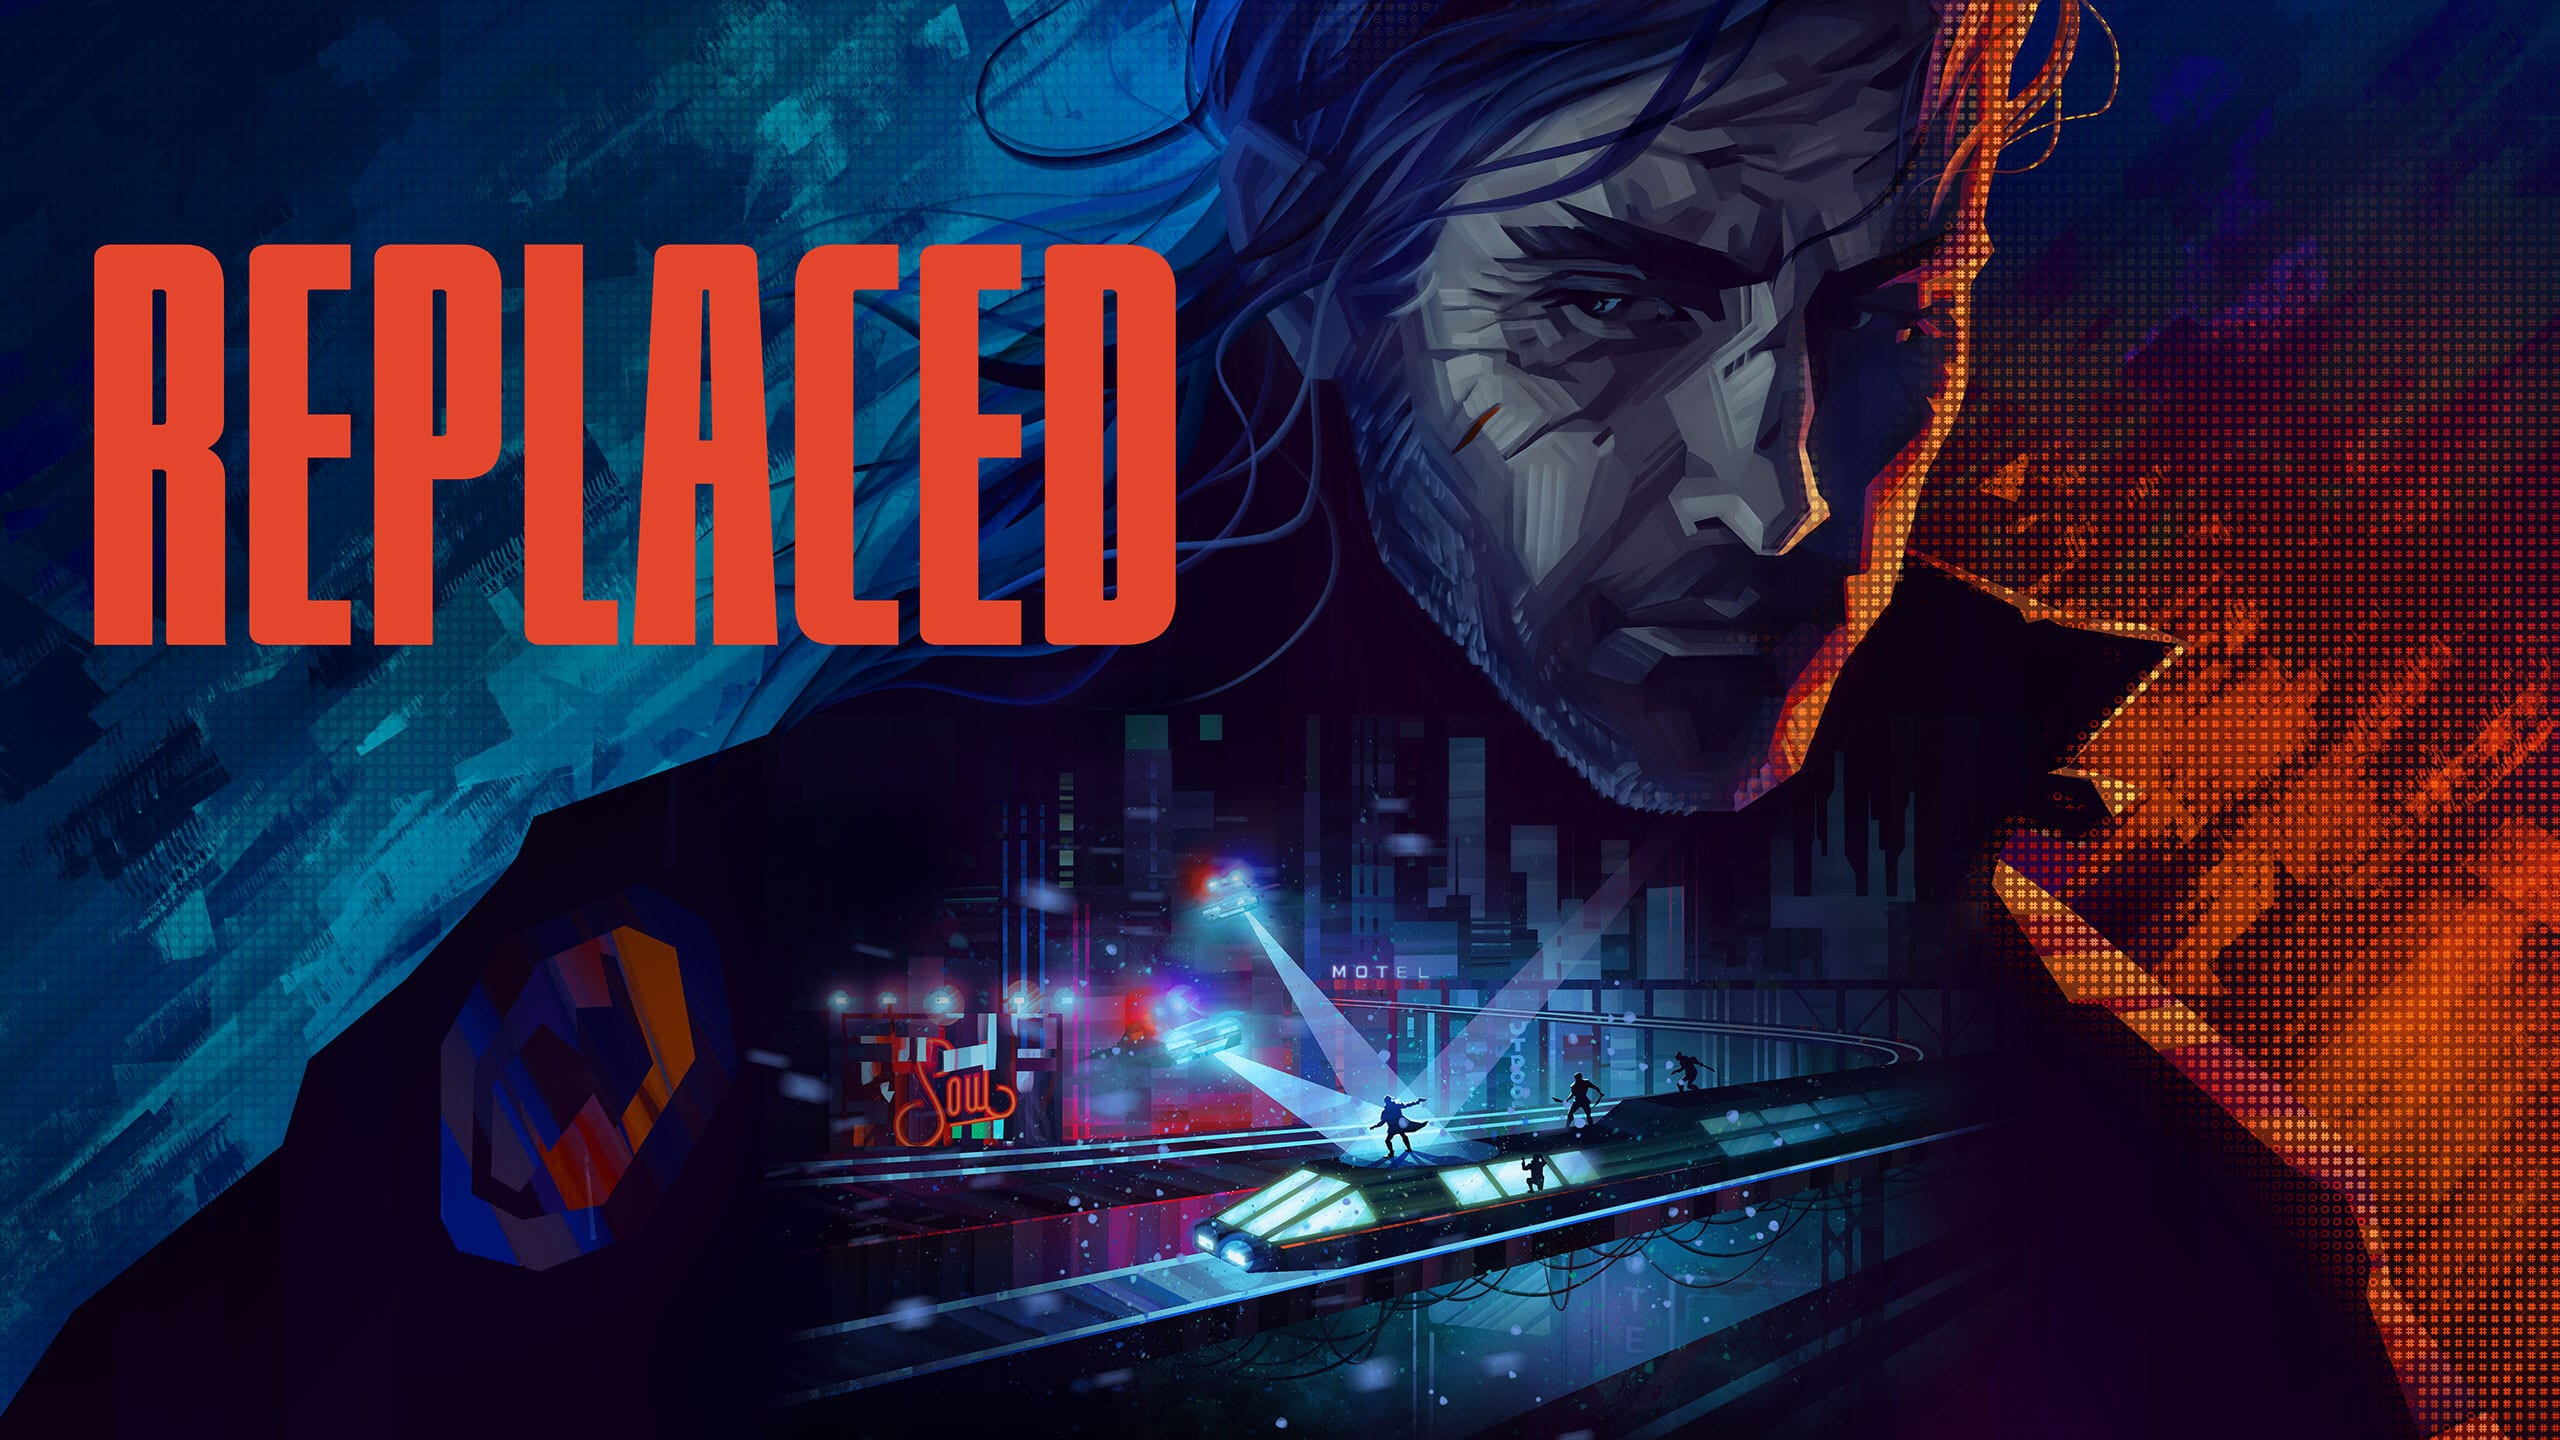 Replaced: Everything We Know So Far About This Action Game